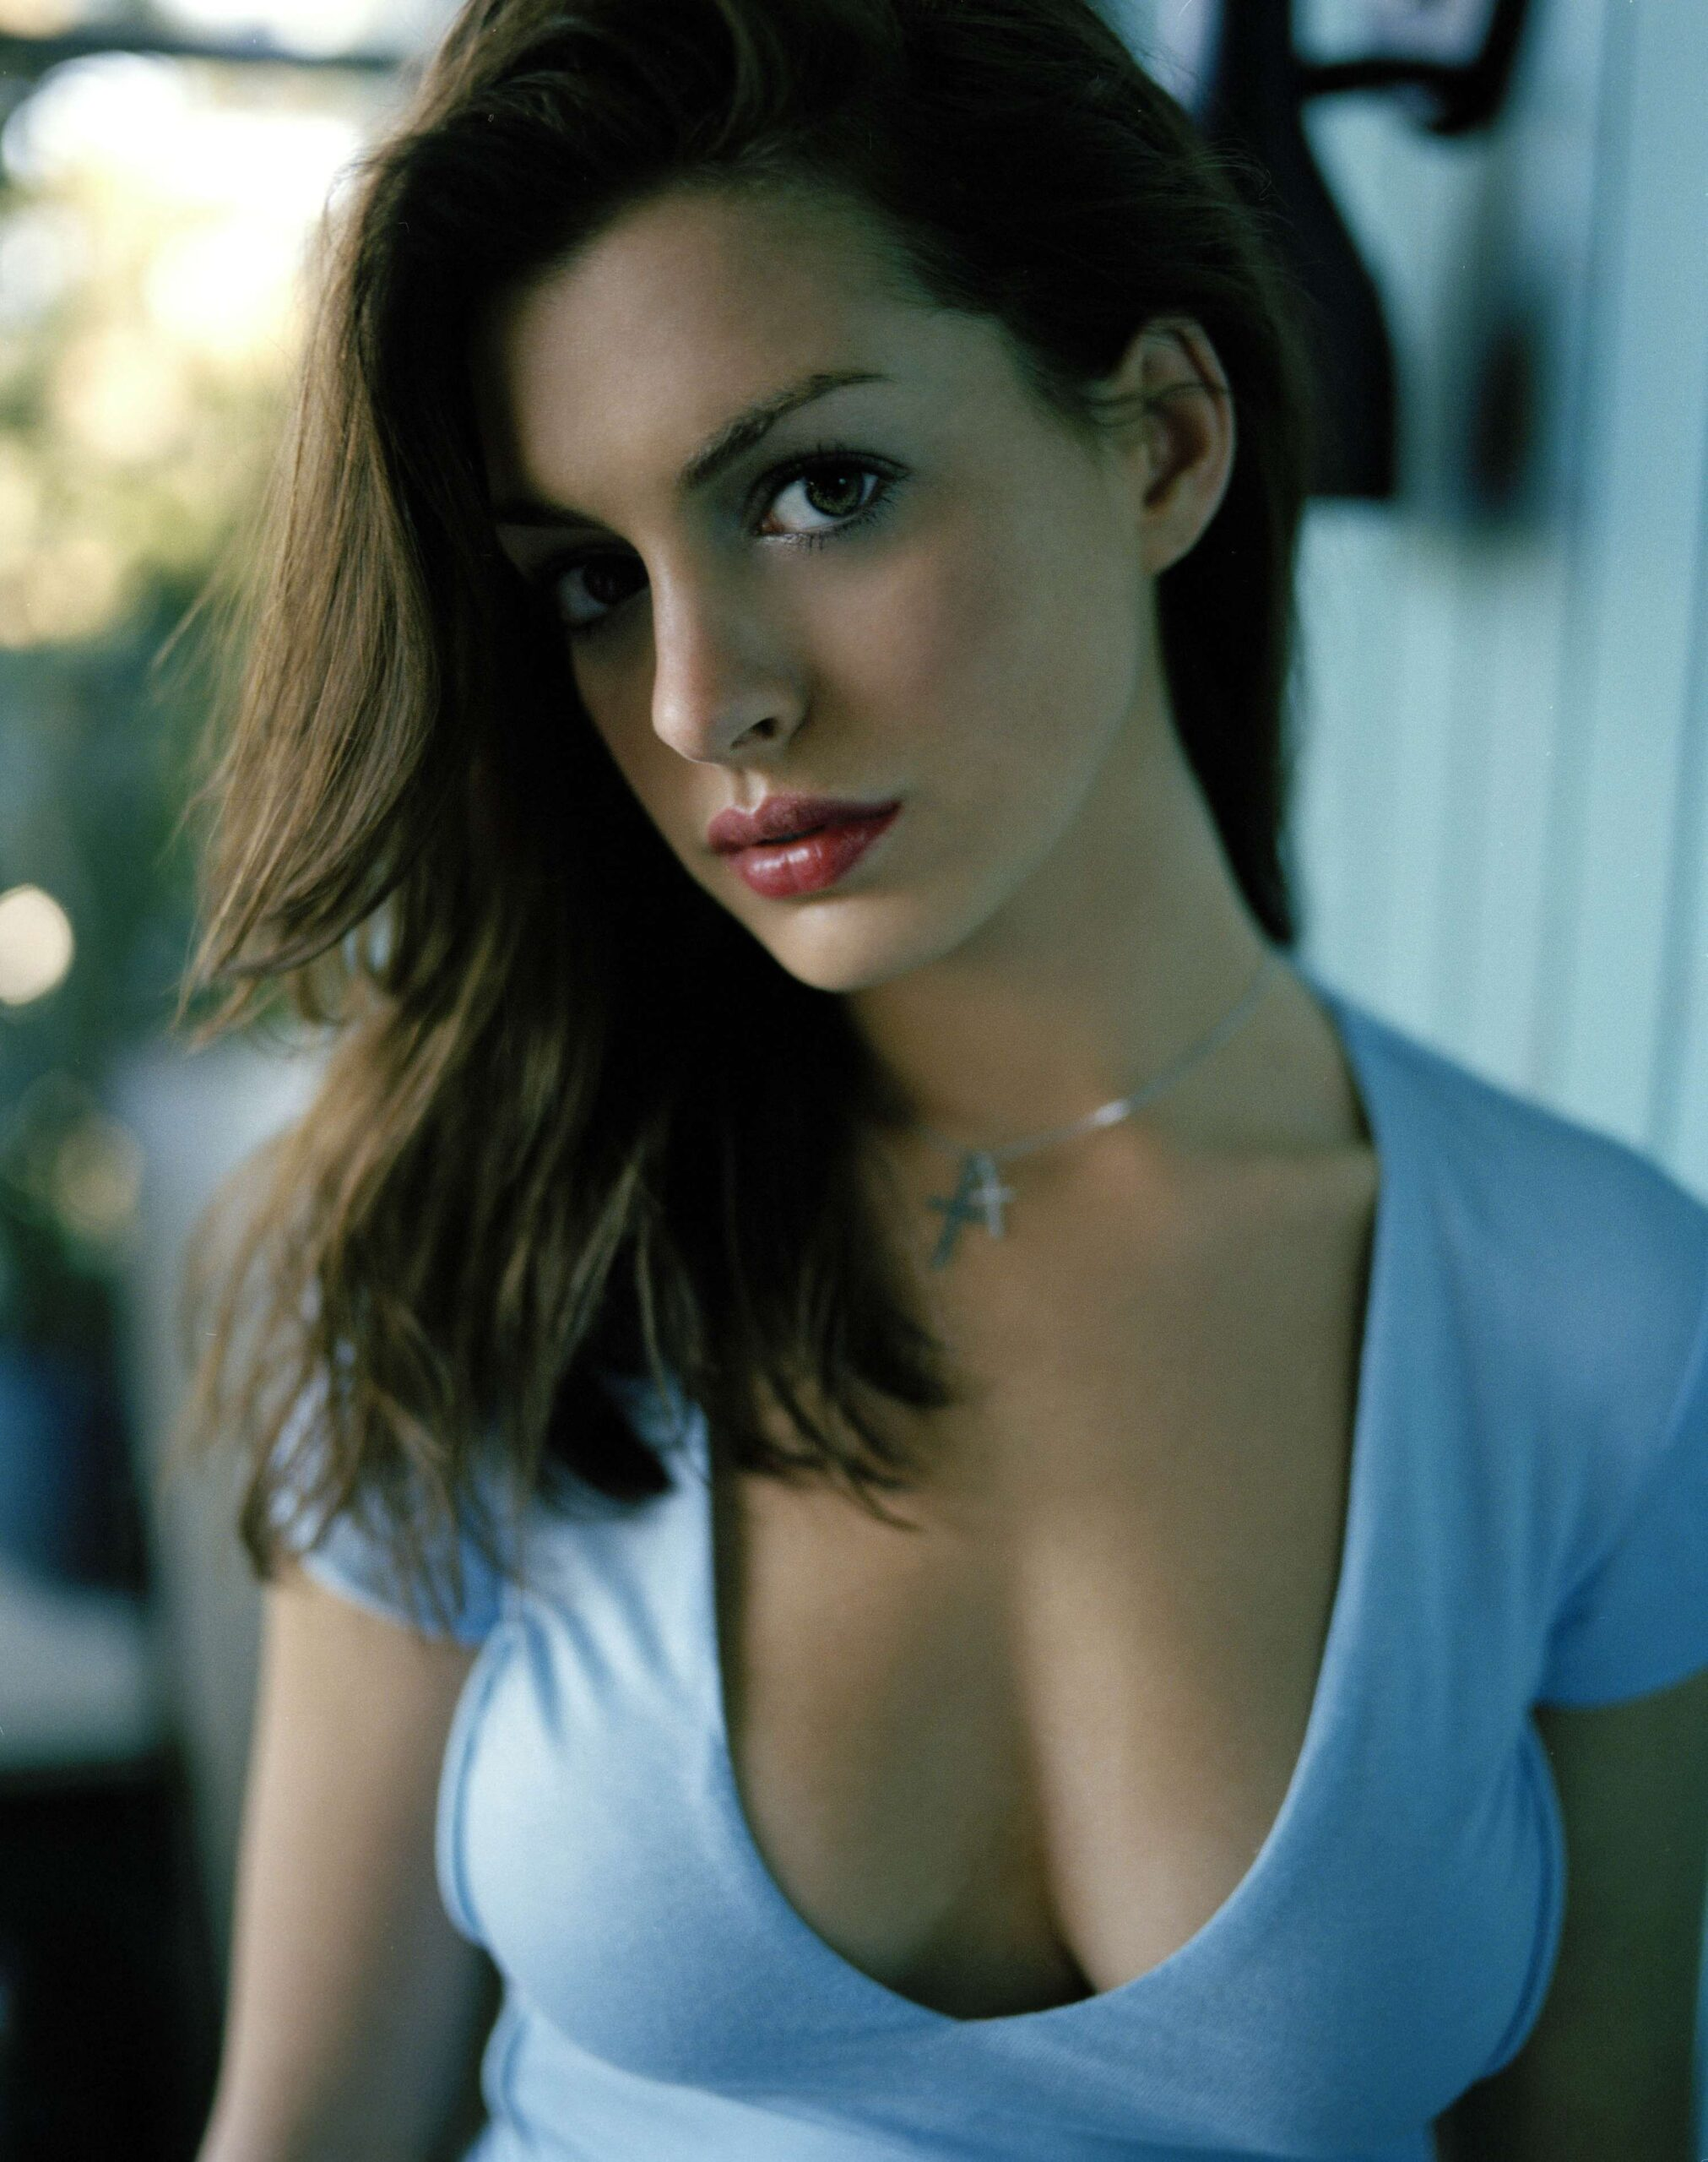 Anne Hathaway is the most gorgeous actress in Hollywood who has received many awards including an Academy Award, a Primetime Emmy Award, and a Golden Globe. She was one of the highest-paid actresses back in 2015. Hathaway also appeared in Forbes Celebrity 100 list in 2009. Her magnificent looks and exceptional acting talent is one of the reasons that she has got a huge fan following. Here we have got a collection of the bold and beautiful Anne Hathaway! Top 10 Bold Clicks of Anne Hathaway! Check out this collection of bold clicks of Anne Hathaway that will leave you awestruck: Early Life The ever-gorgeous American actress Anne Hathaway got her first big break in 1999 on the television series Get Real. She then appeared in the role that made her famous, playing Mia Thermopolis in The Princess Diaries in 2001. In 2006, Hathaway gained huge success with The Devil Wears Prada, and the following year she starred in Becoming Jane, a film about Jane Austen. She garnered both critical and commercial attention for her role in Love and Other Drugs in 2010. She went on to win praise for film appearances later including those in The Dark Knight Rises, Les Miserables (both released in 2012), and Alice Through the Looking Glass, before being tapped for the heist comedy Ocean's 8. Anne Hathaway Movies List Anne Hathaway has always been at the level of perfection in all of her films and she has rapidly touched the peak of fame. Her acting skills and the way she owns a character makes her stand out. When it comes to her beauty, that is a plus point making her one of those highest-paid actresses in Hollywood. Here we have got a list of her most famous movies that must be on your watchlist: The Princess Diaries The Other Side of Heaven Nicholas Nikleby The Cat Returns The Devil Wears Prada Get Smart Bride Wars The Dark Knight Rises Interstellar Les Miserables Ocean's 8 Alice Through the Looking Glass